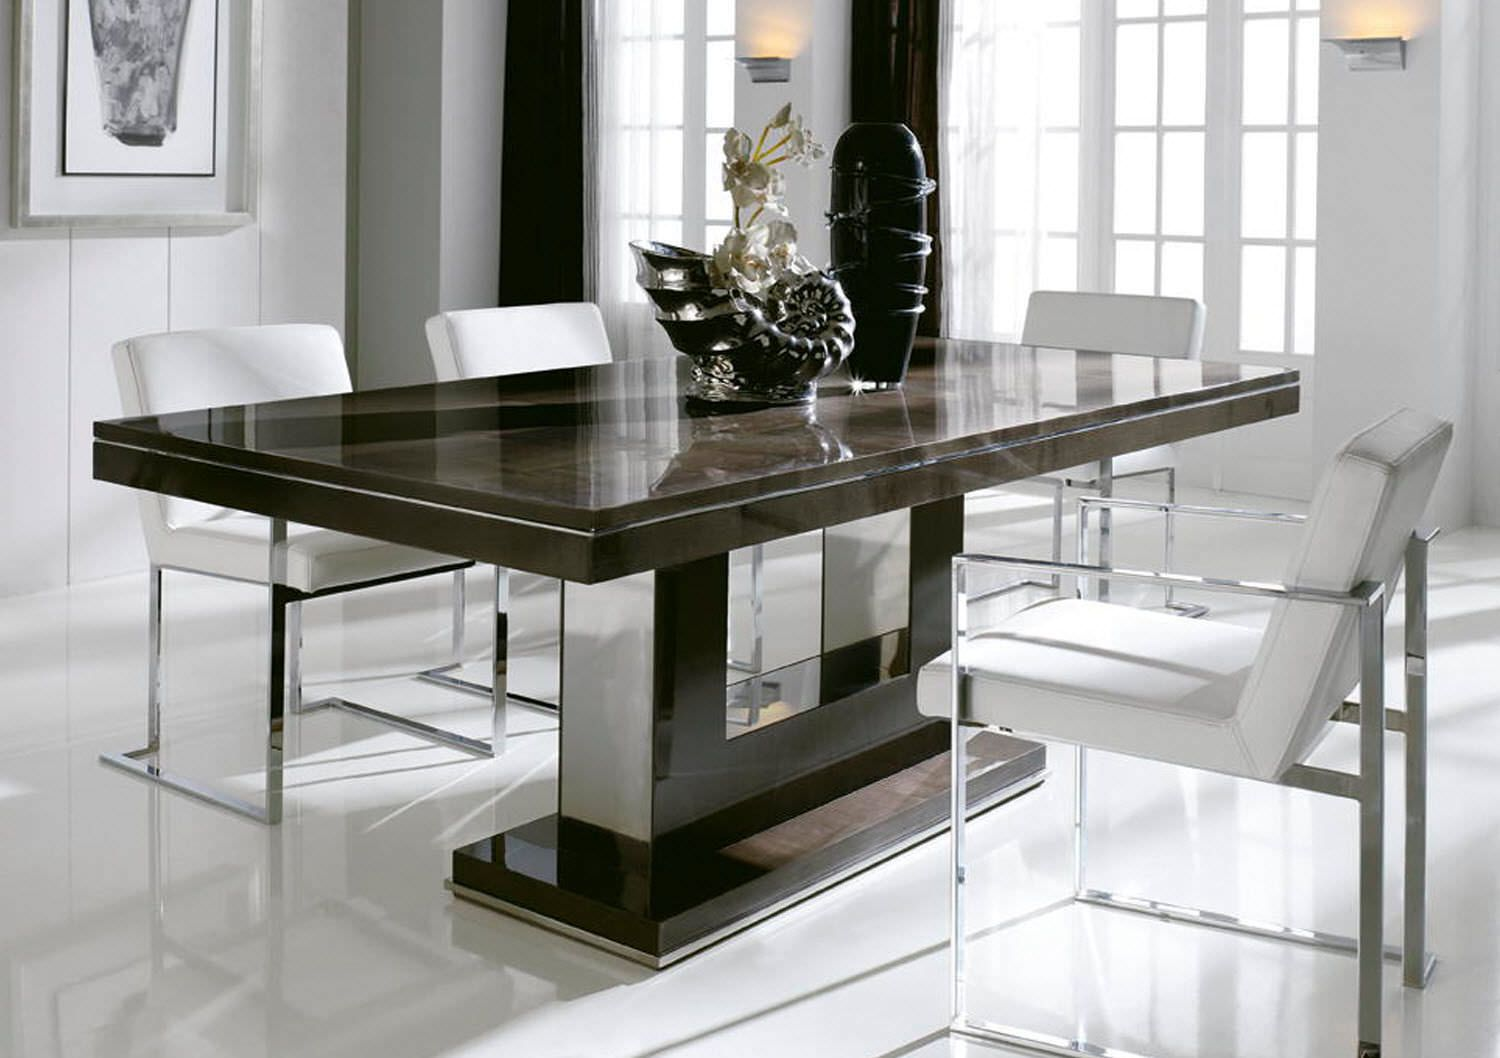 Enter To Win Revelere S New Year Renewal Beauty Box Dining Table Marble Contemporary Kitchen Tables Dining Table Design